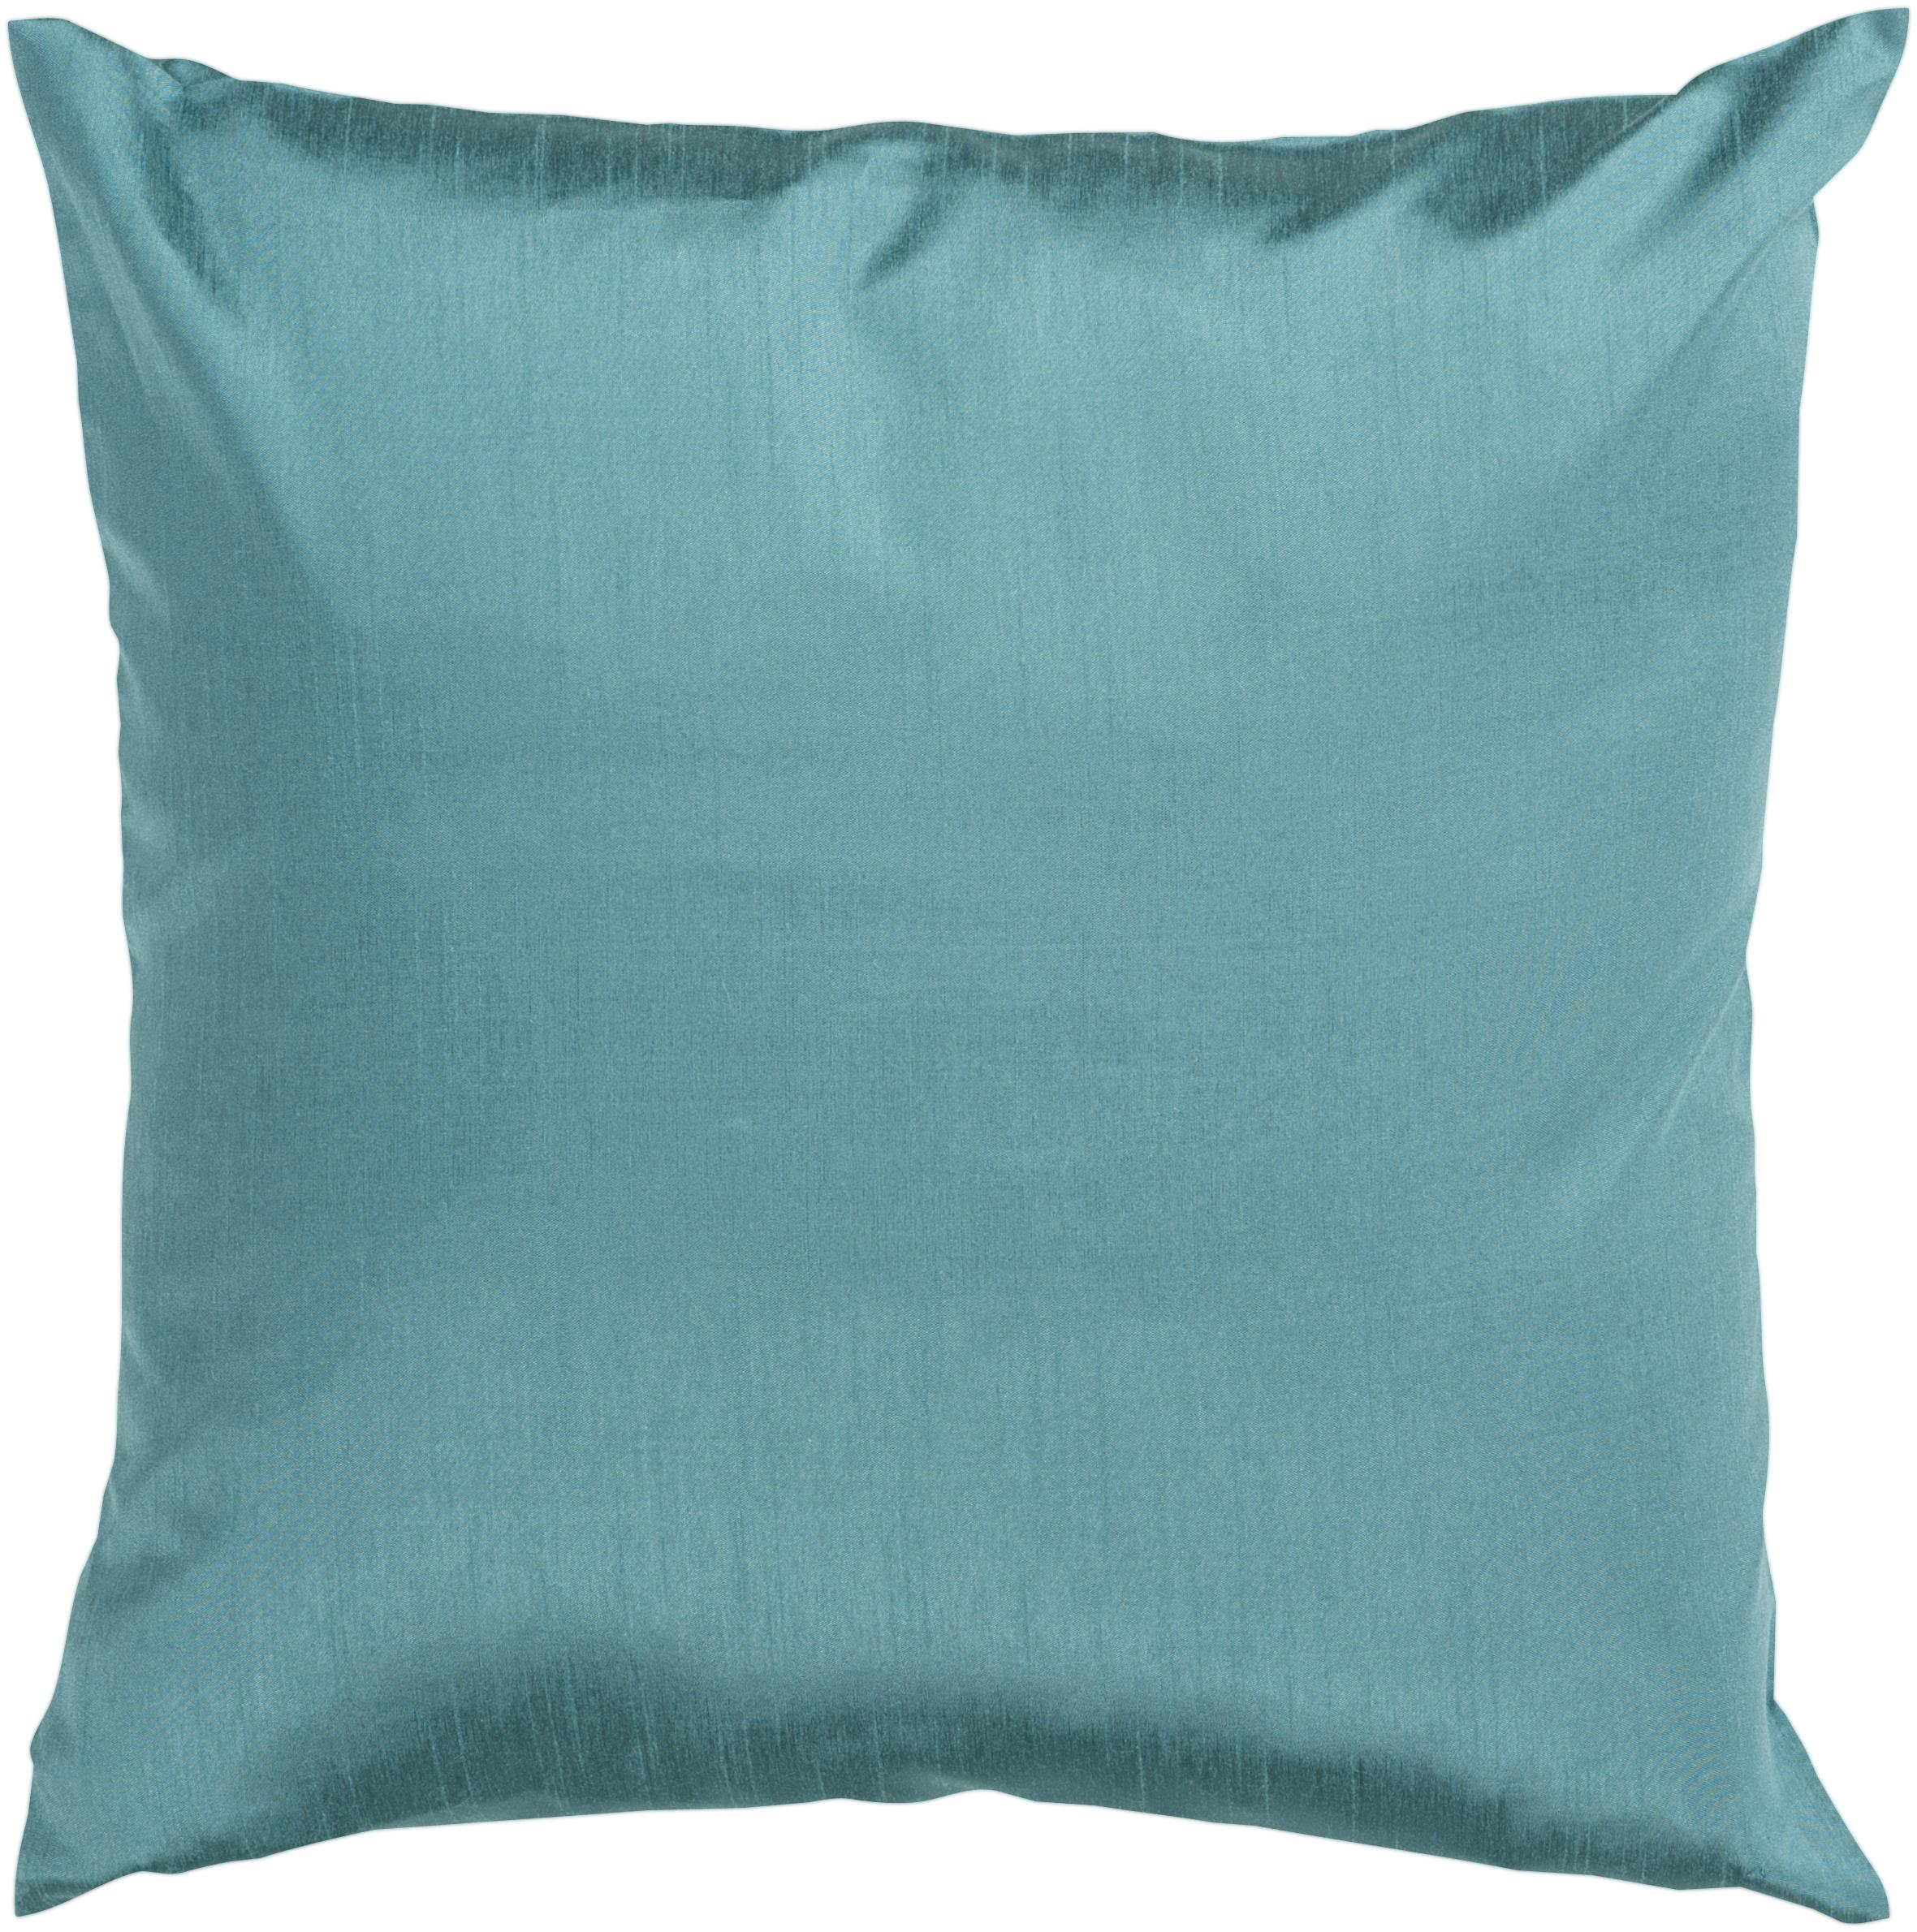 "Surya Pillows 18"" x 18"" Pillow - Item Number: HH041-1818P"